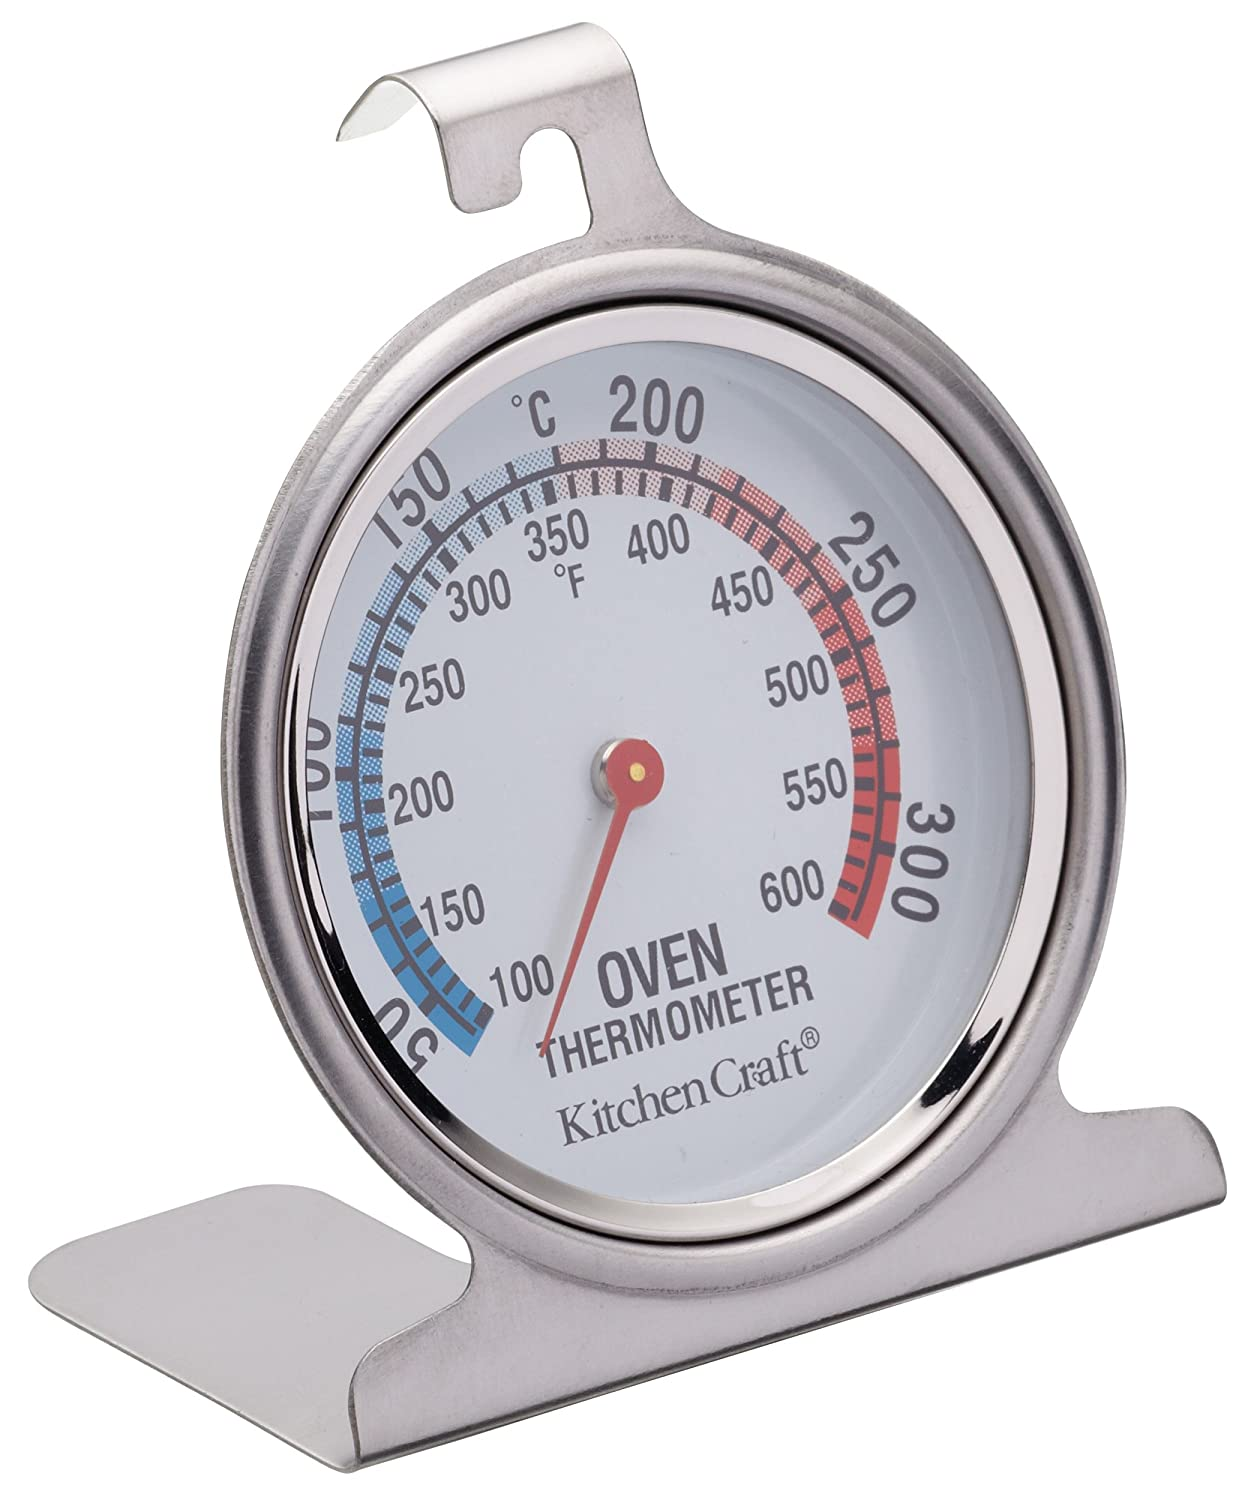 Classic Stainless Steel Oven Thermometer Measures Temperature Inside The Oven by Kitchen Craft KCOVENTH